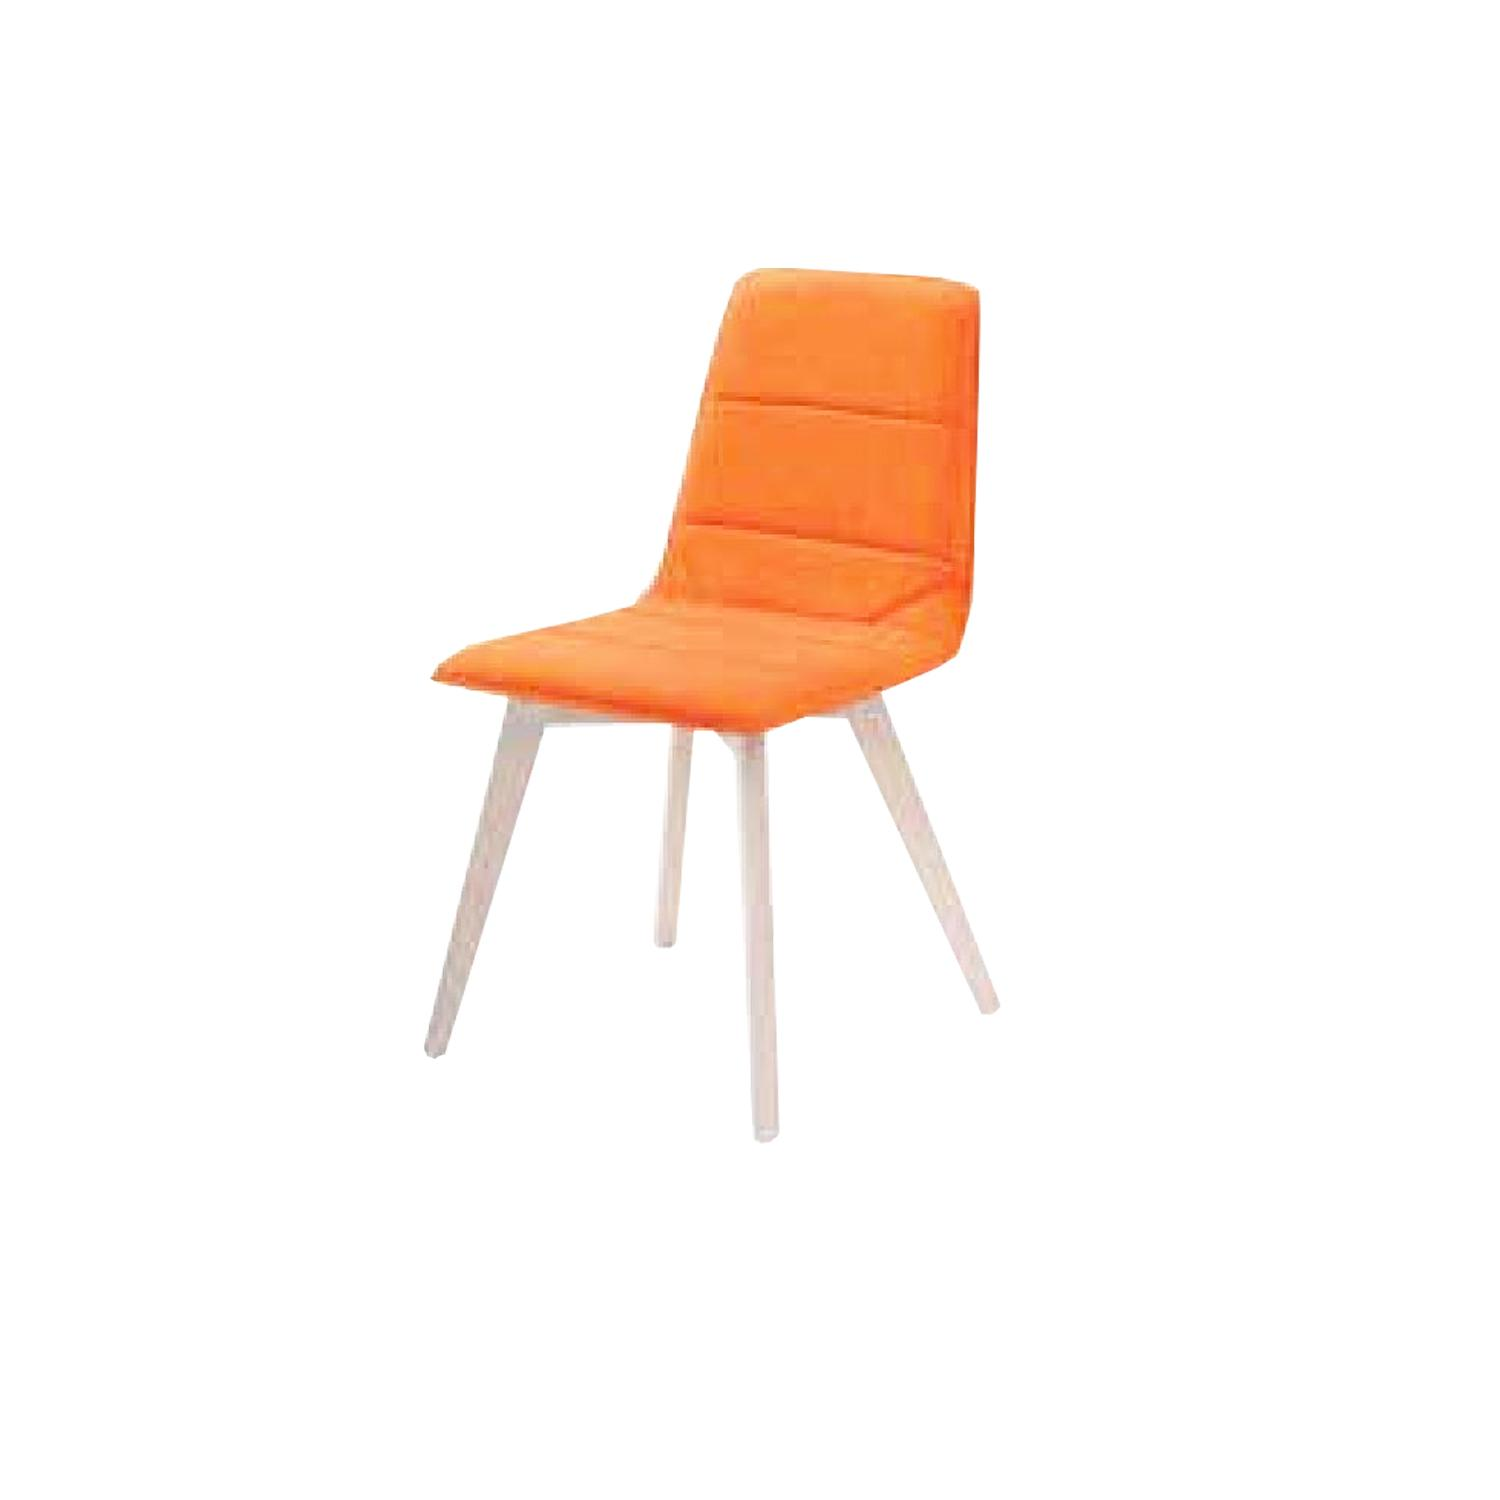 LIVING MALL_Benedek 4 Dining Chair_FREE DELIVERY